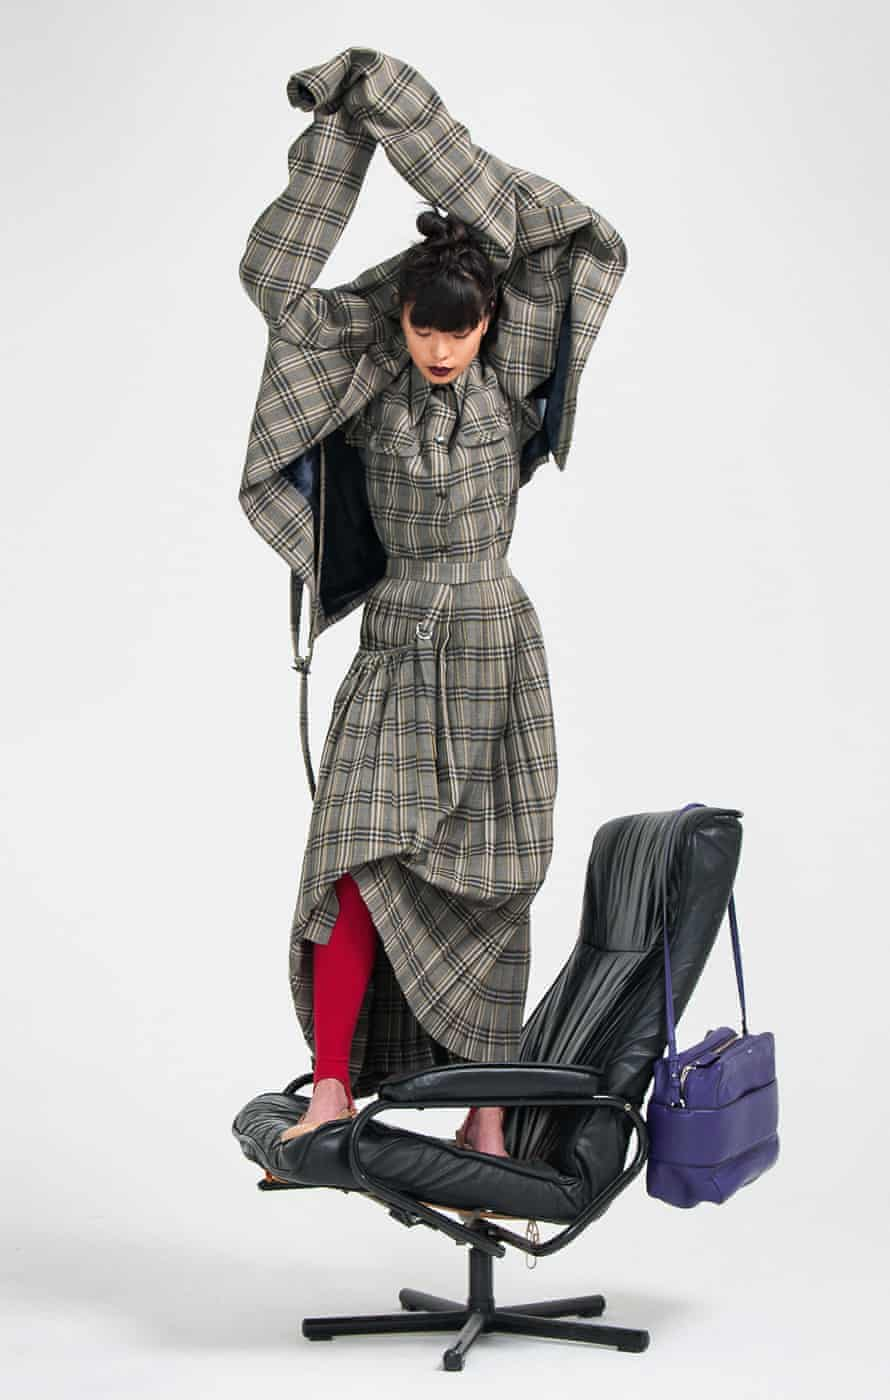 Model standing on a chair, wearing skirt suit by Joseph